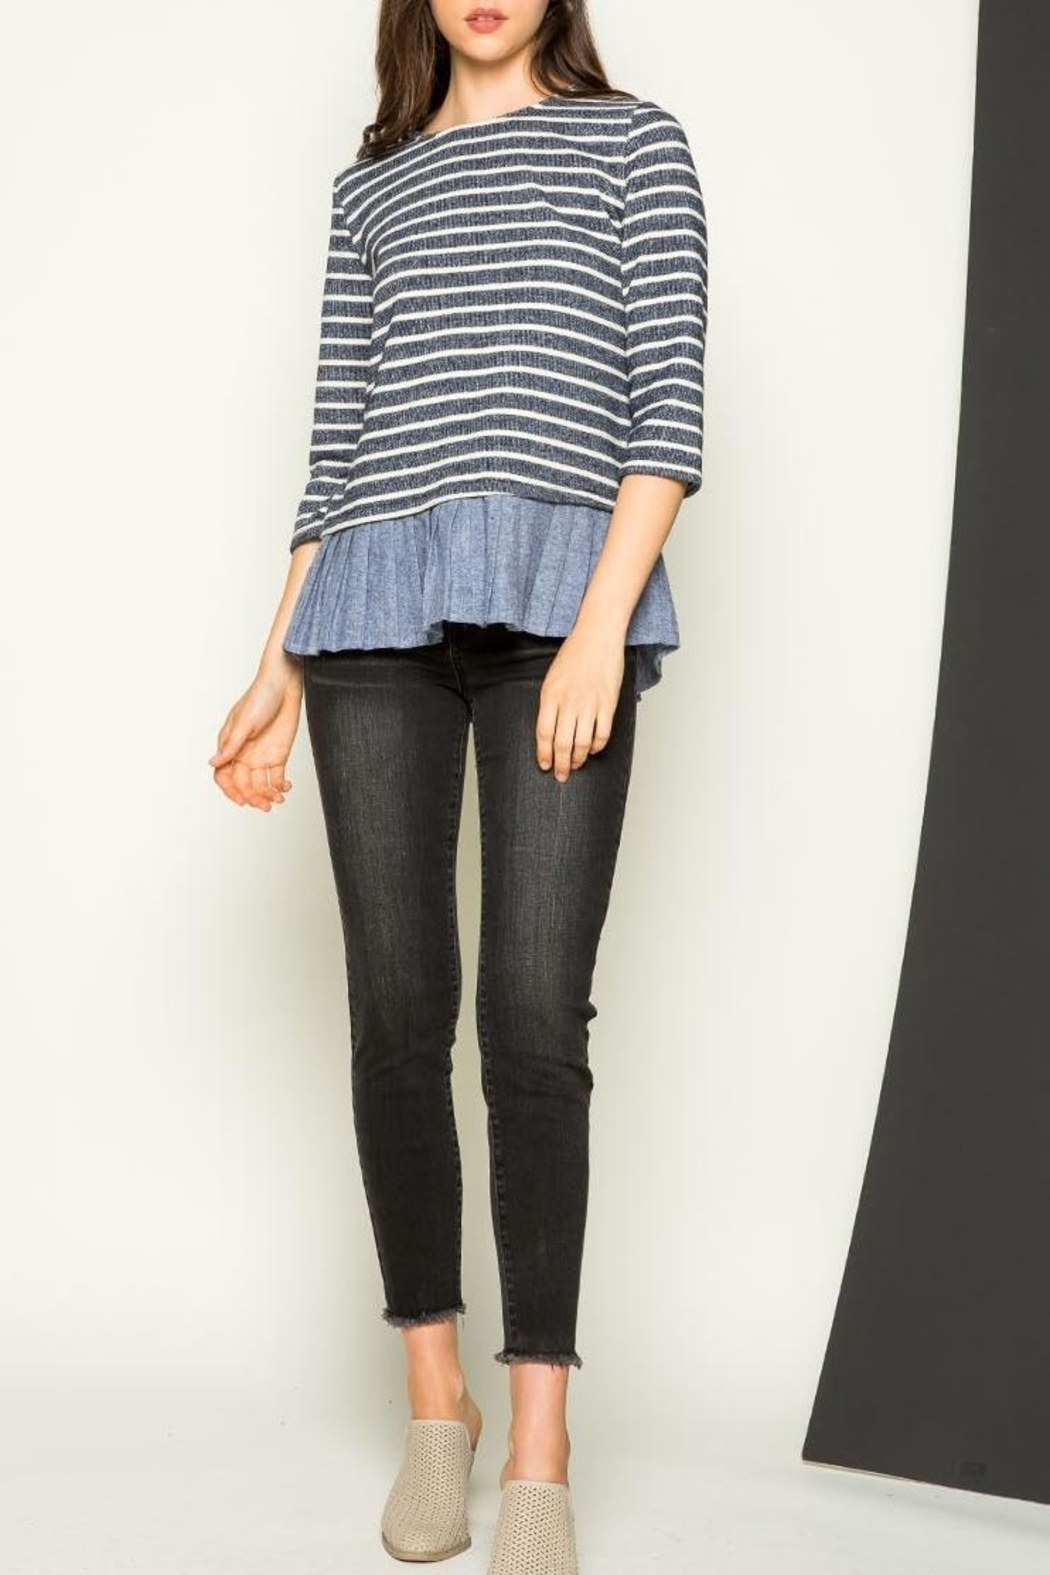 THML Clothing Striped Sweater - Main Image